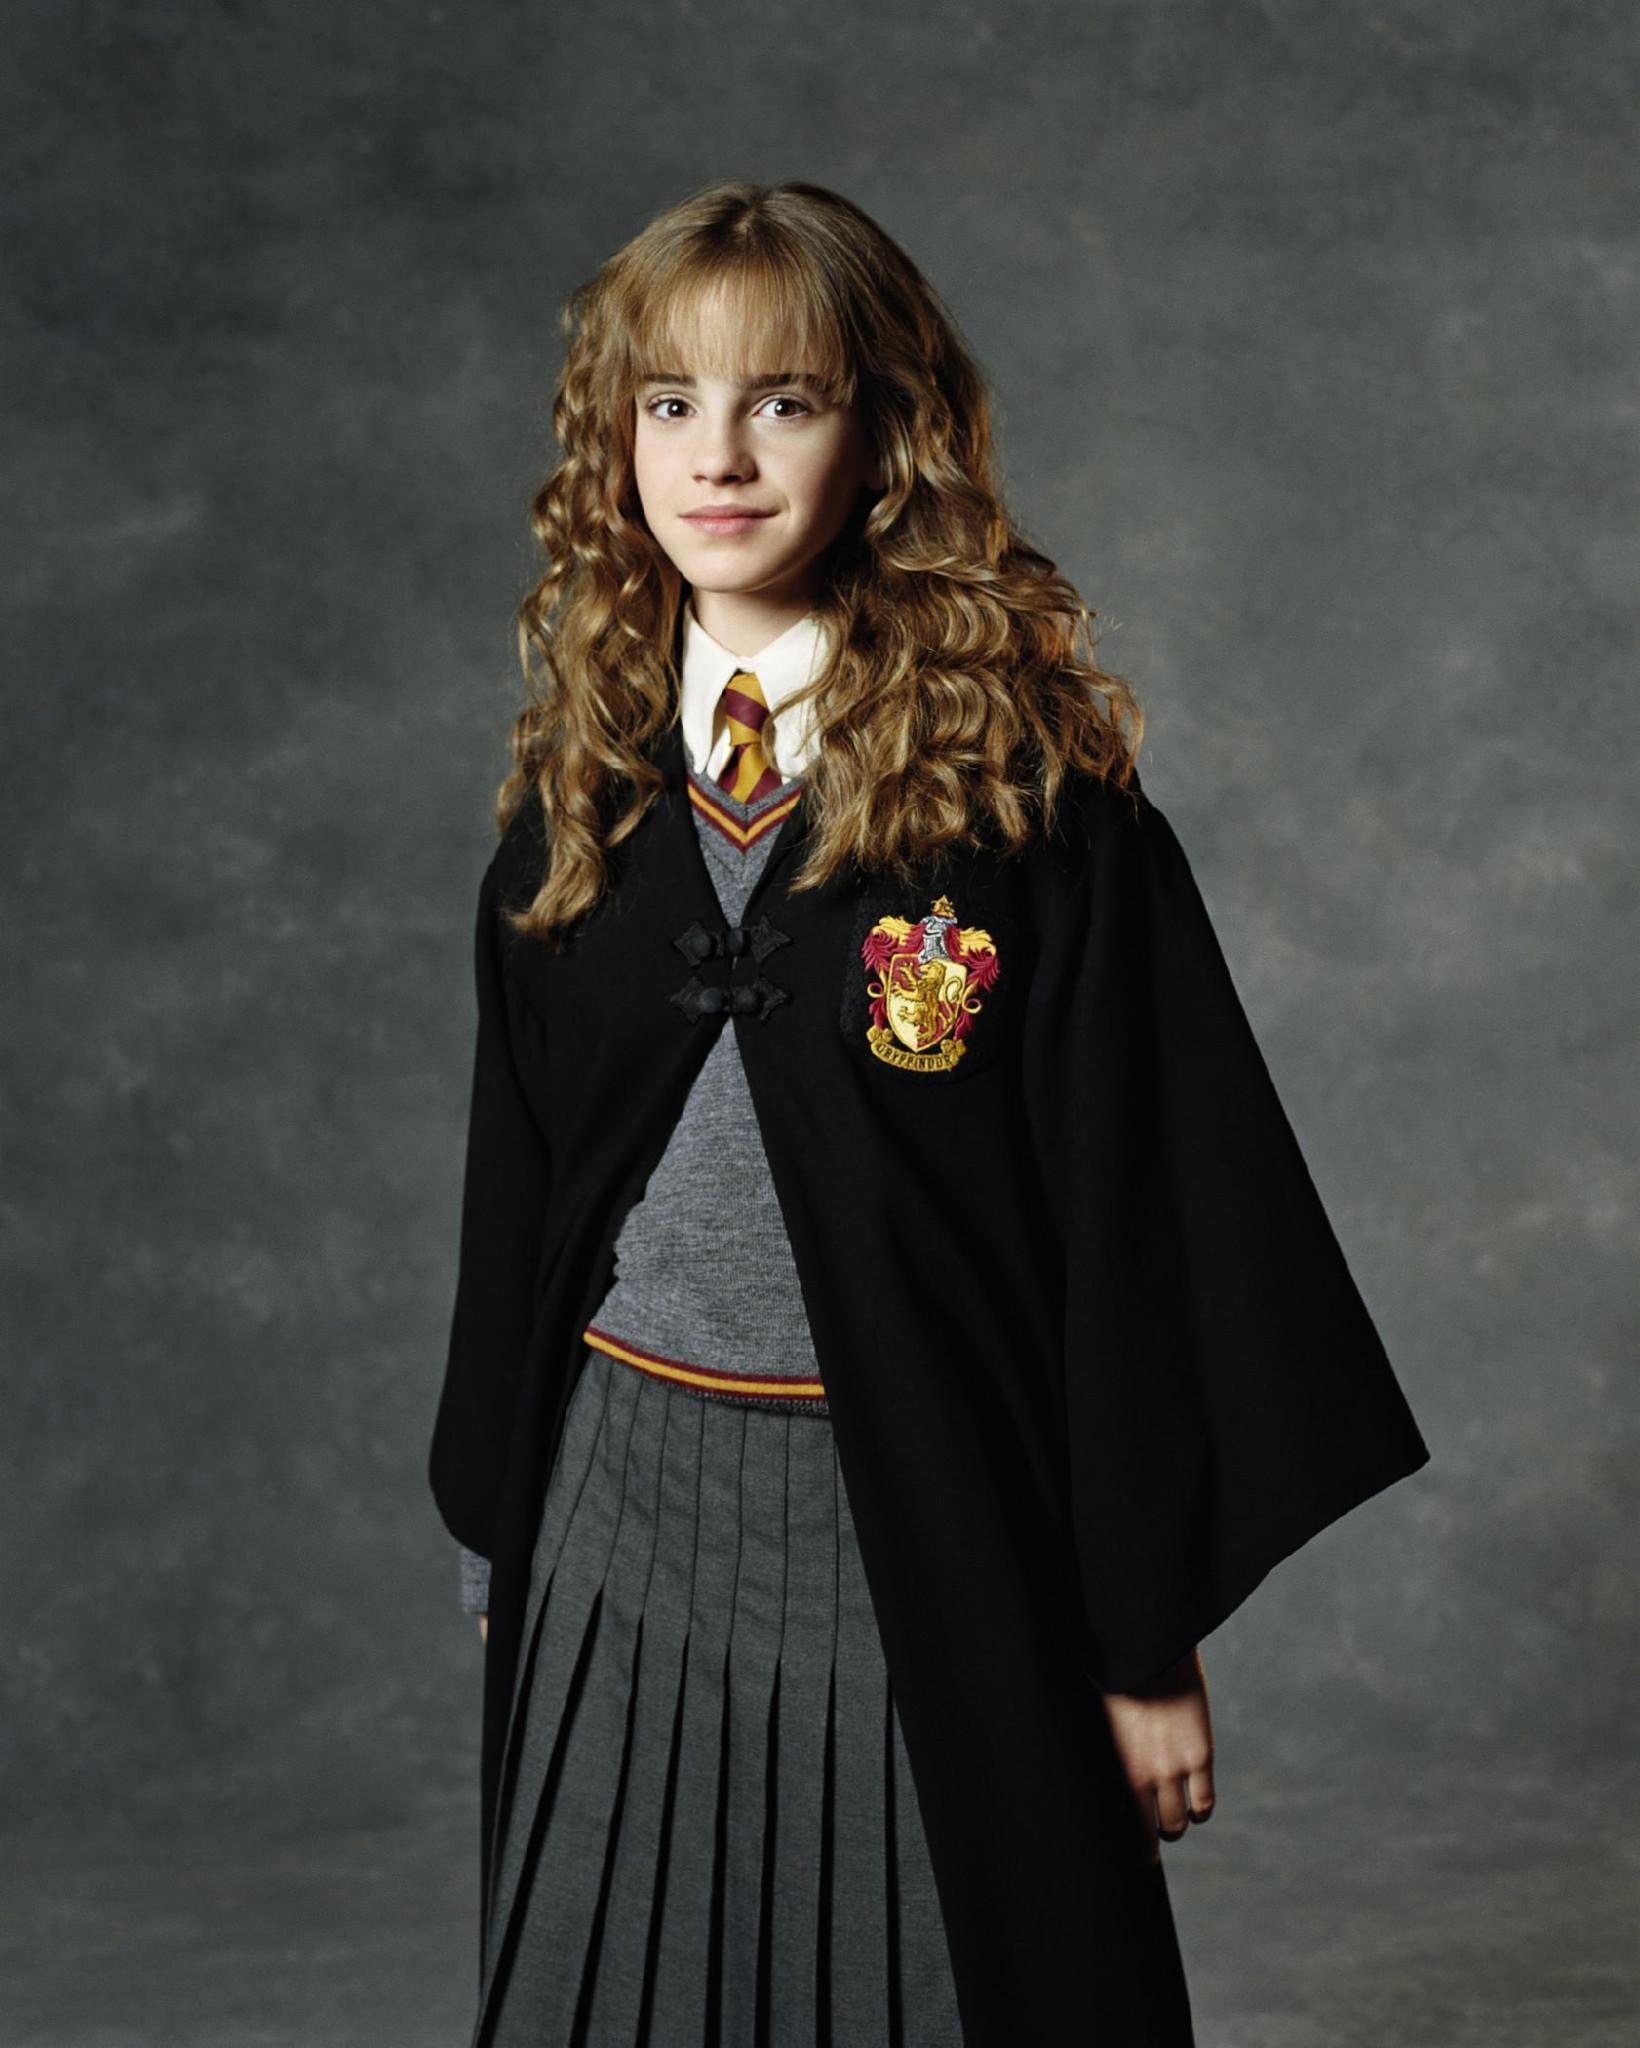 What is The full name of Hermione